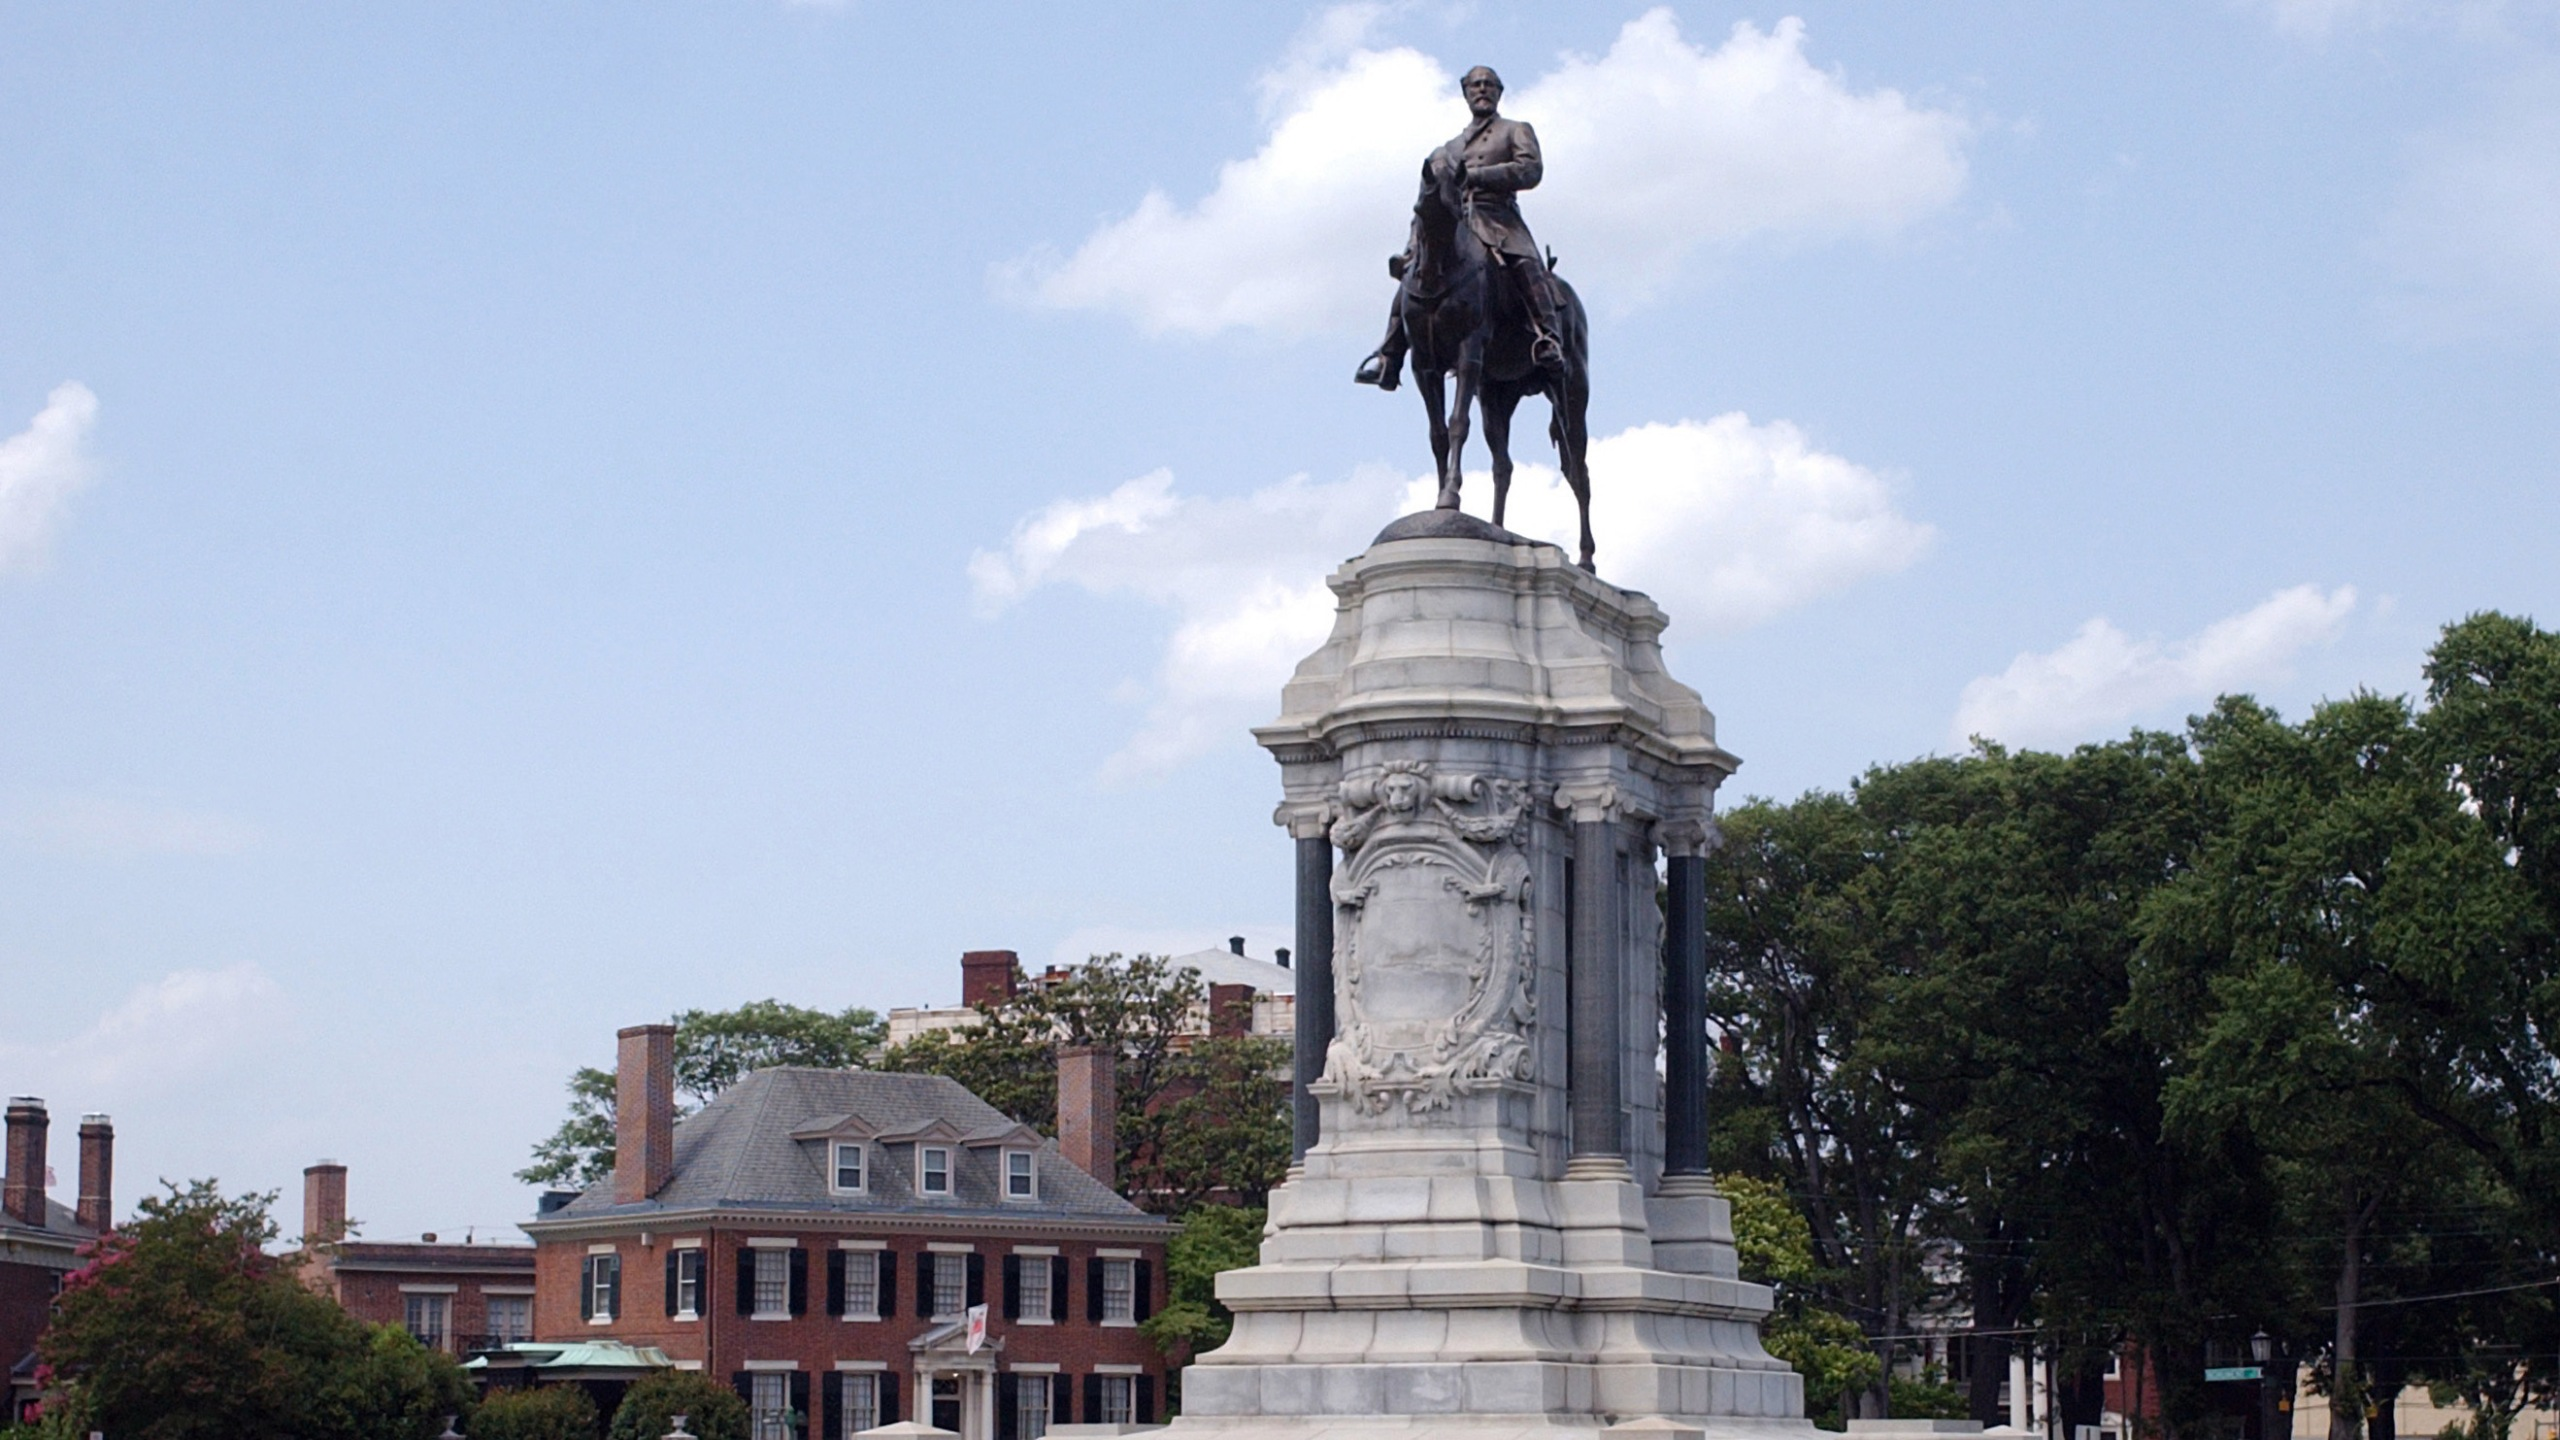 Virginia Gov. Ralph Northam will announce plans to remove a statue honoring Confederate Gen. Robert E. Lee from Richmond's historic Monument Avenue. Credit: MCT/Getty Images